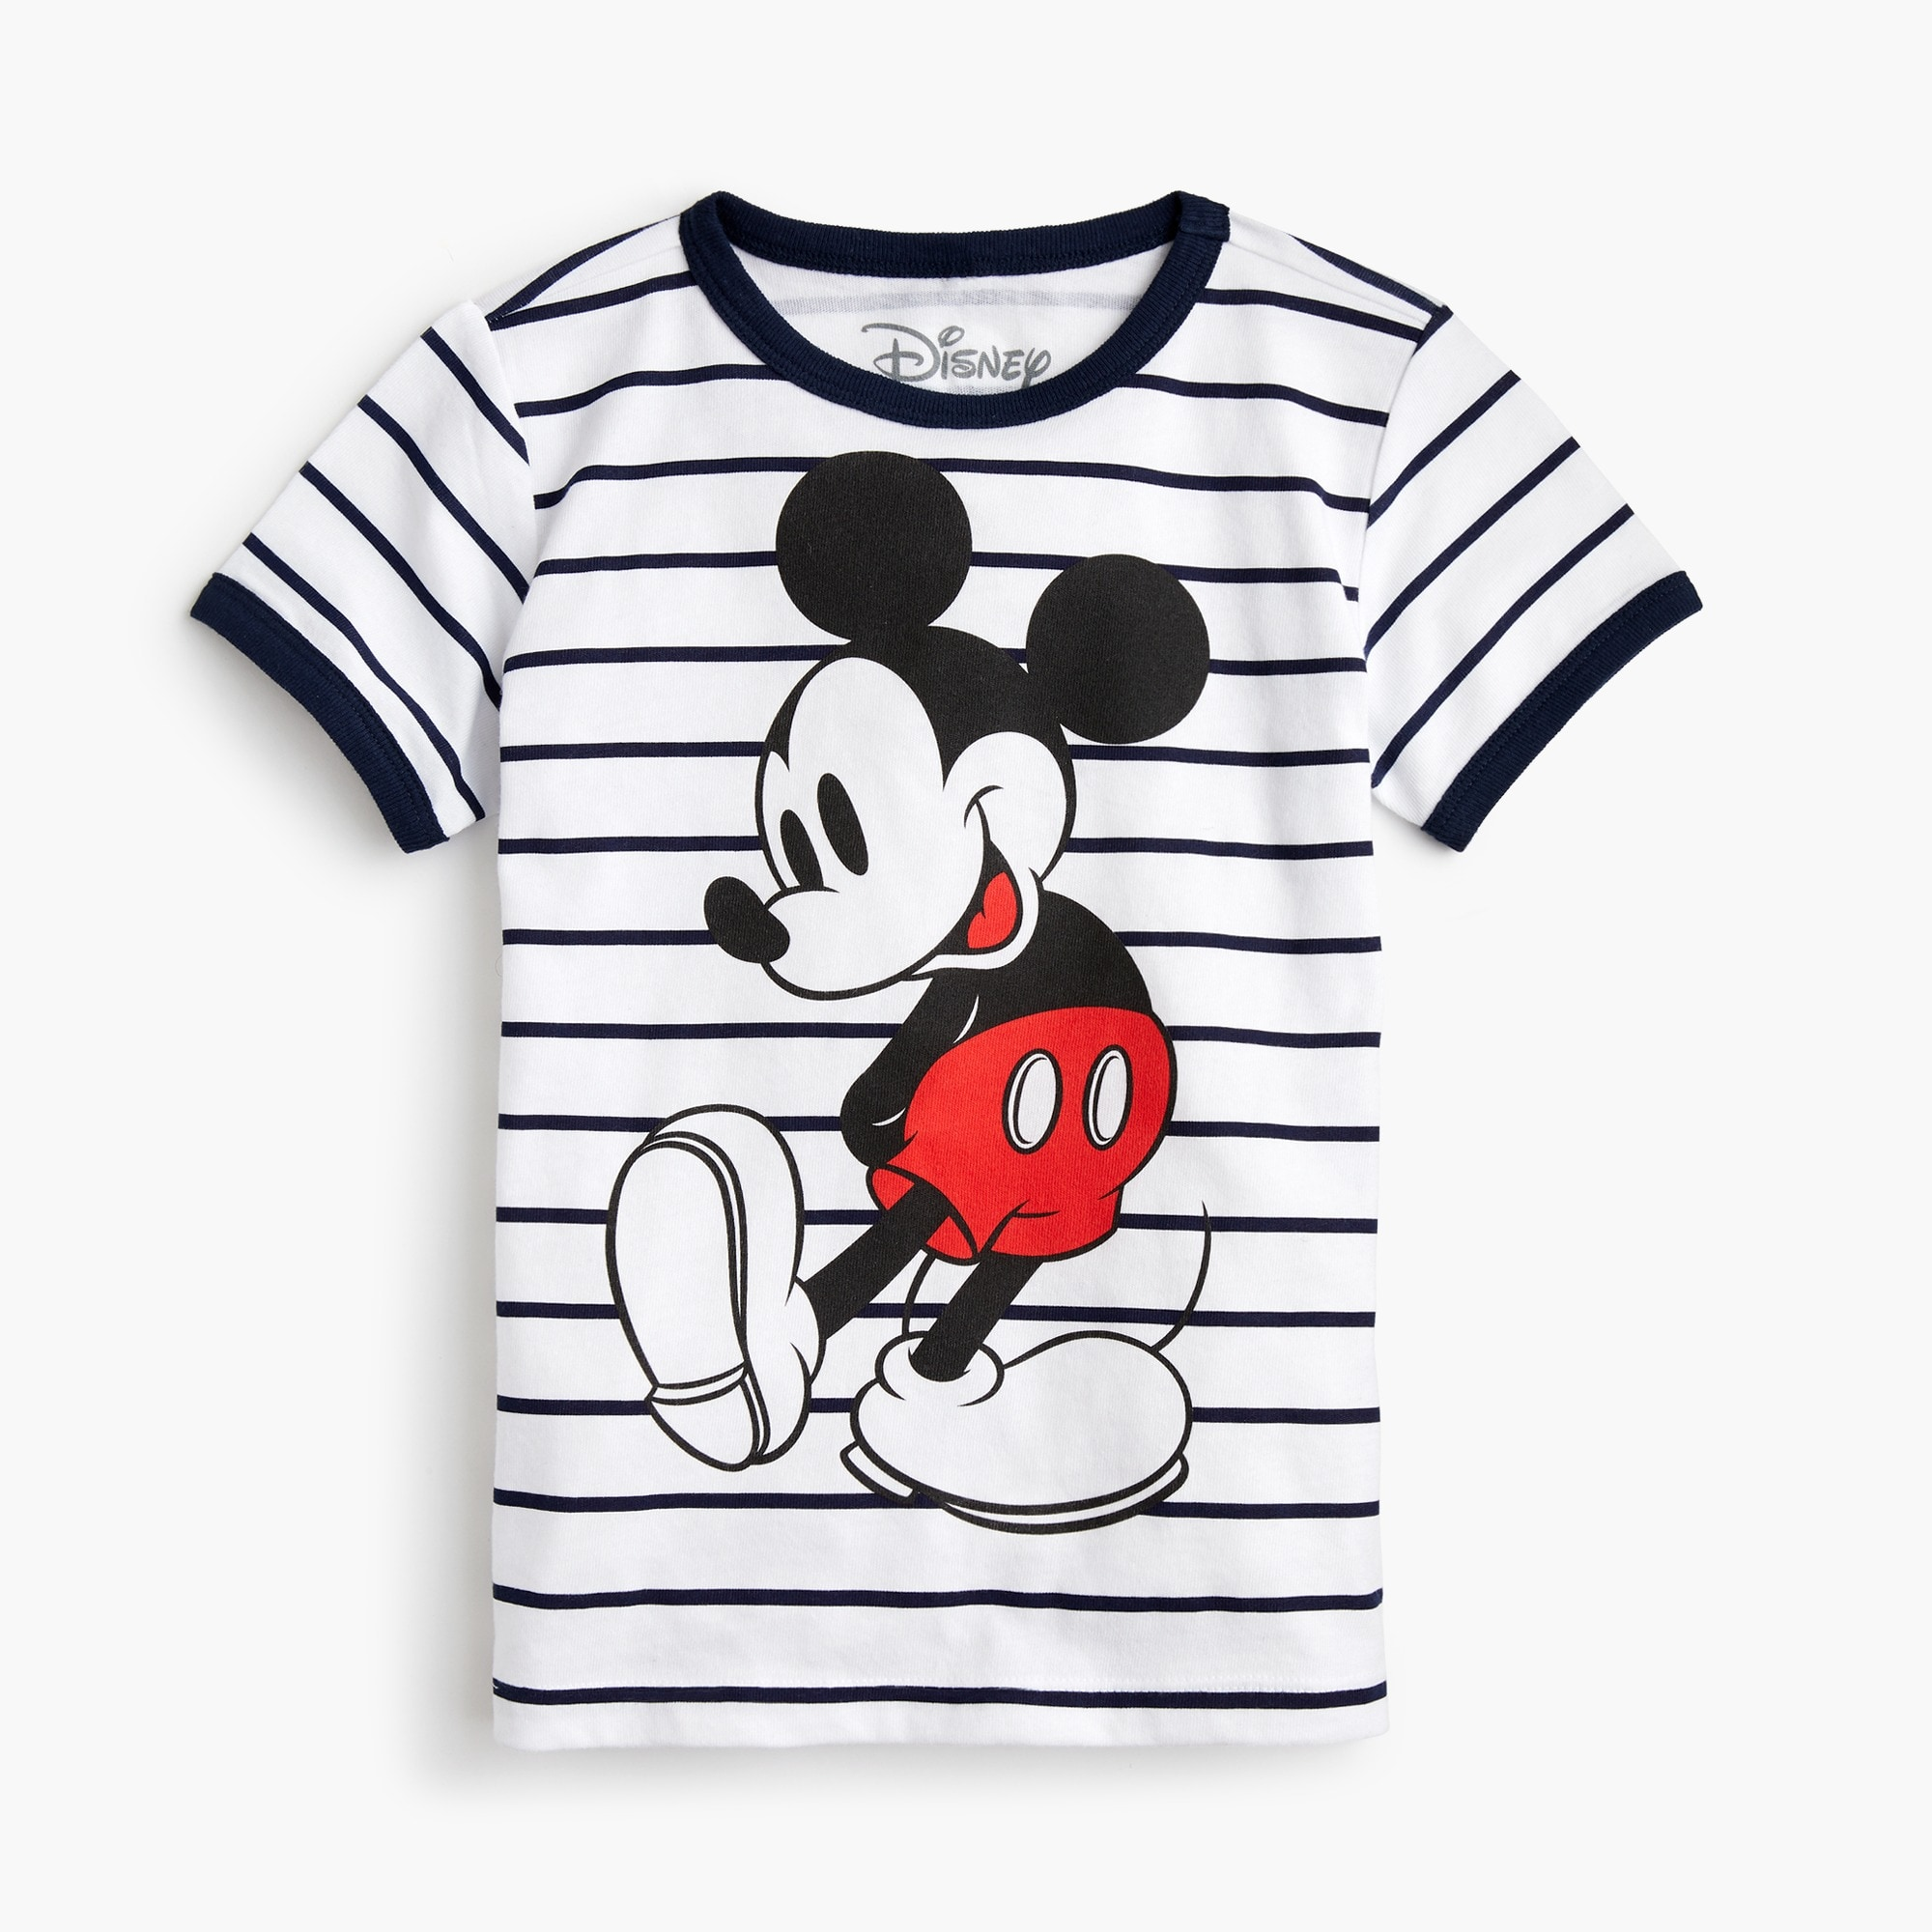 boys Kids' Disney® for crewcuts Mickey Mouse T-shirt